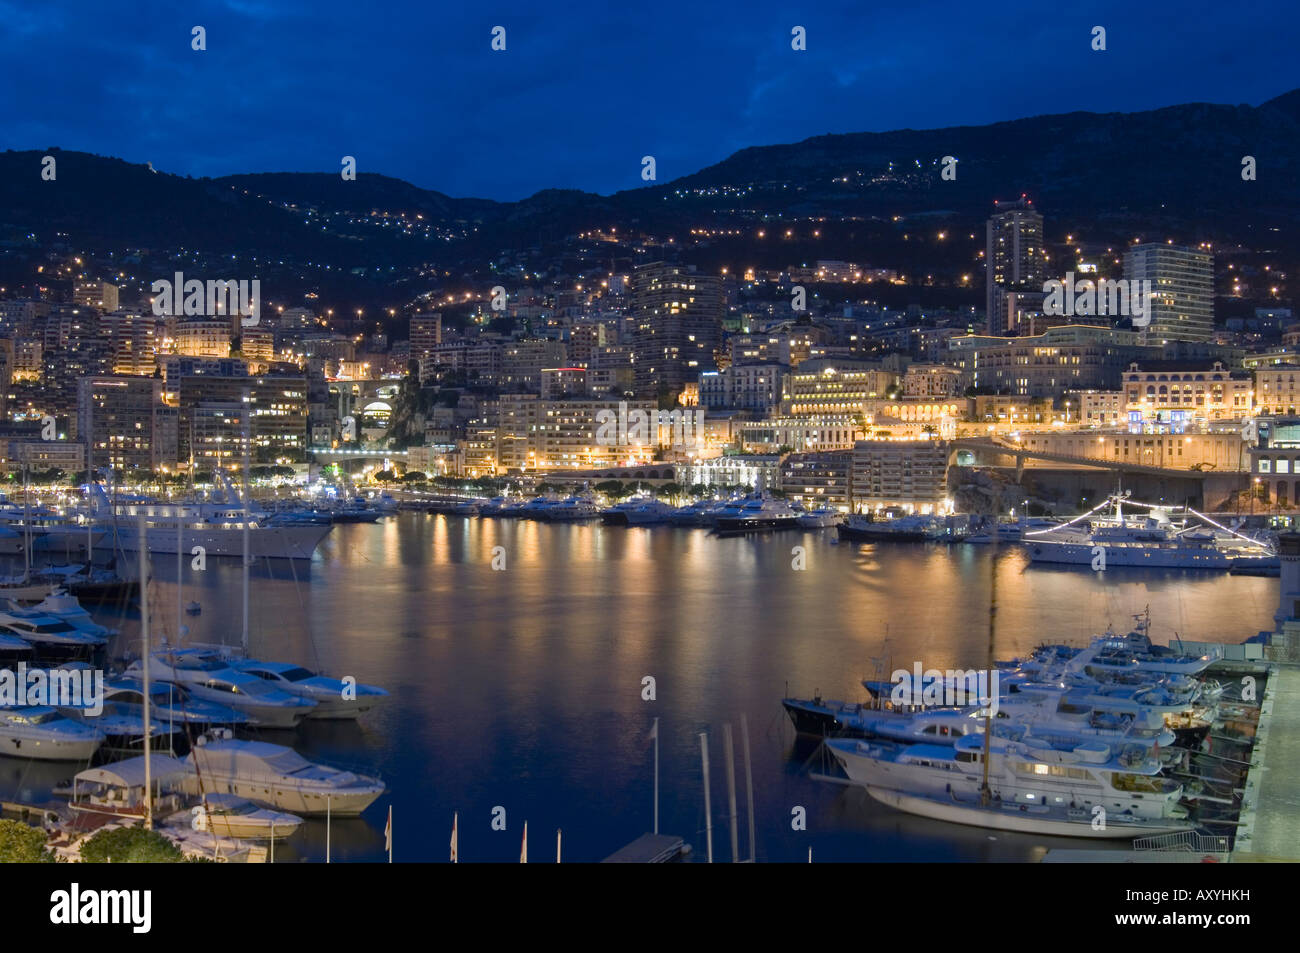 Waterfront at night, Monte Carlo, Principality of Monaco, Cote d'Azur, Mediterranean, Europe - Stock Image